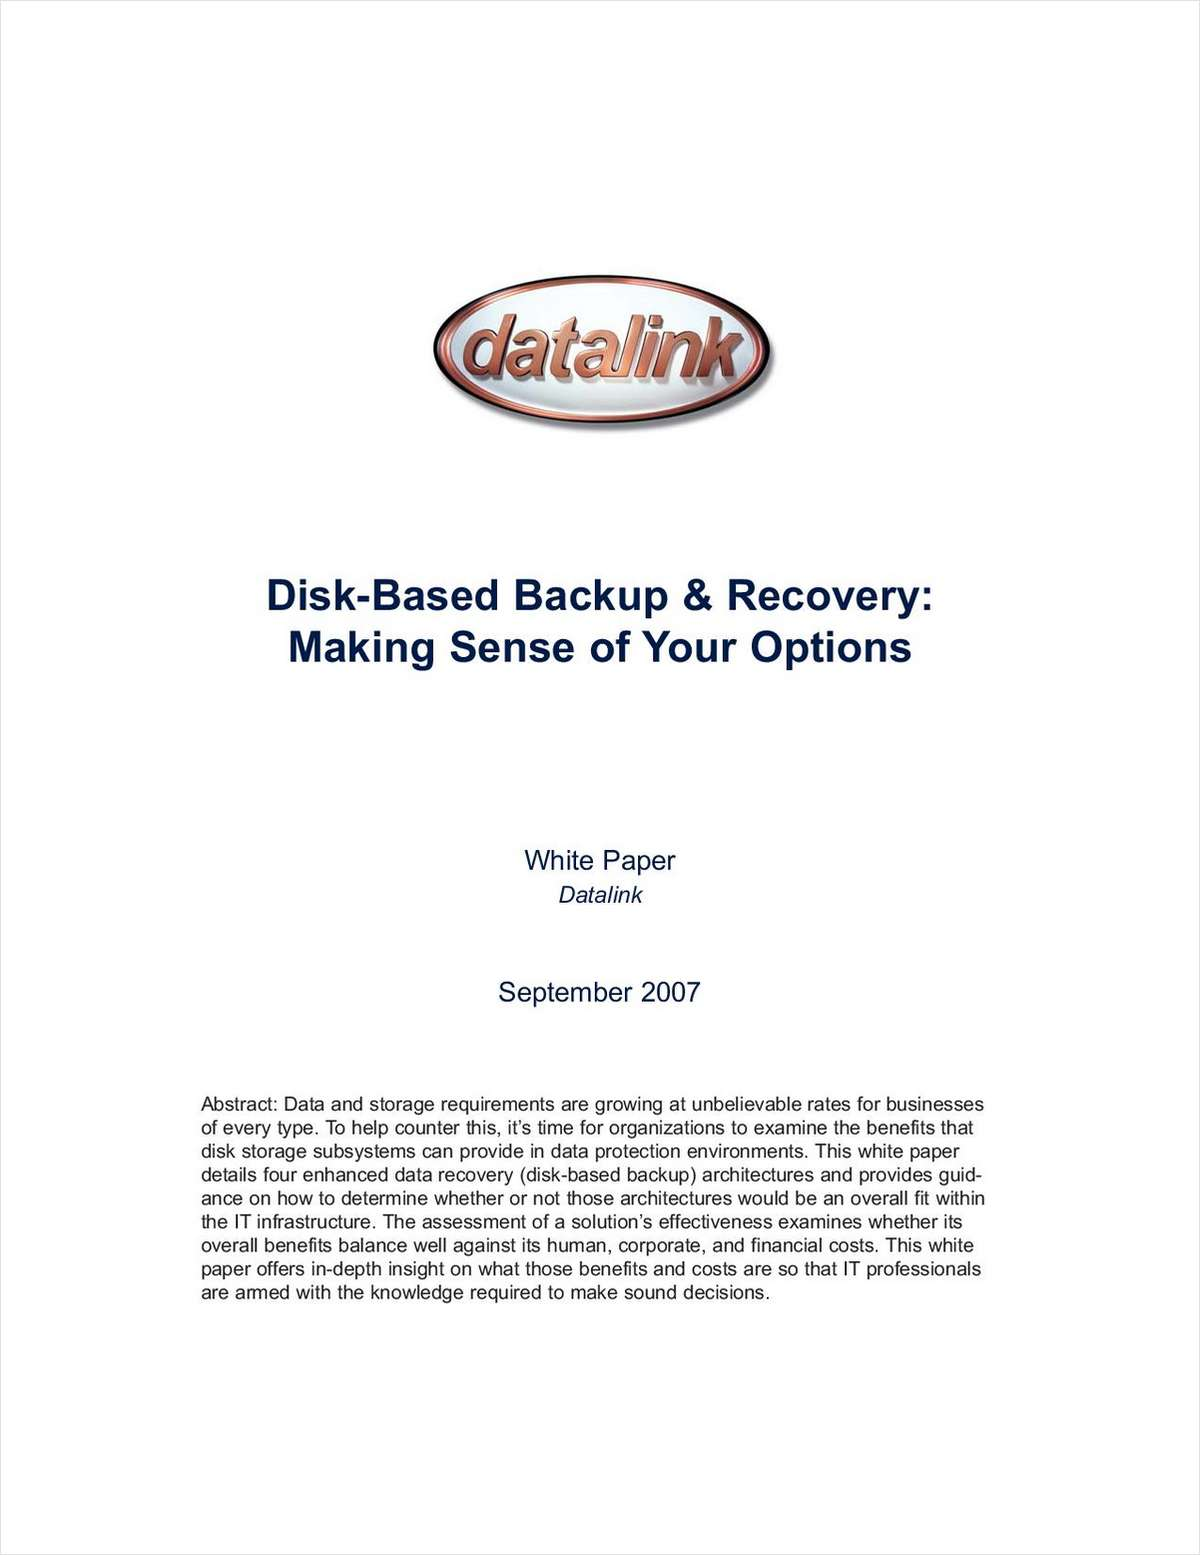 Disk-based Backup & Recovery: Making Sense of Your Options